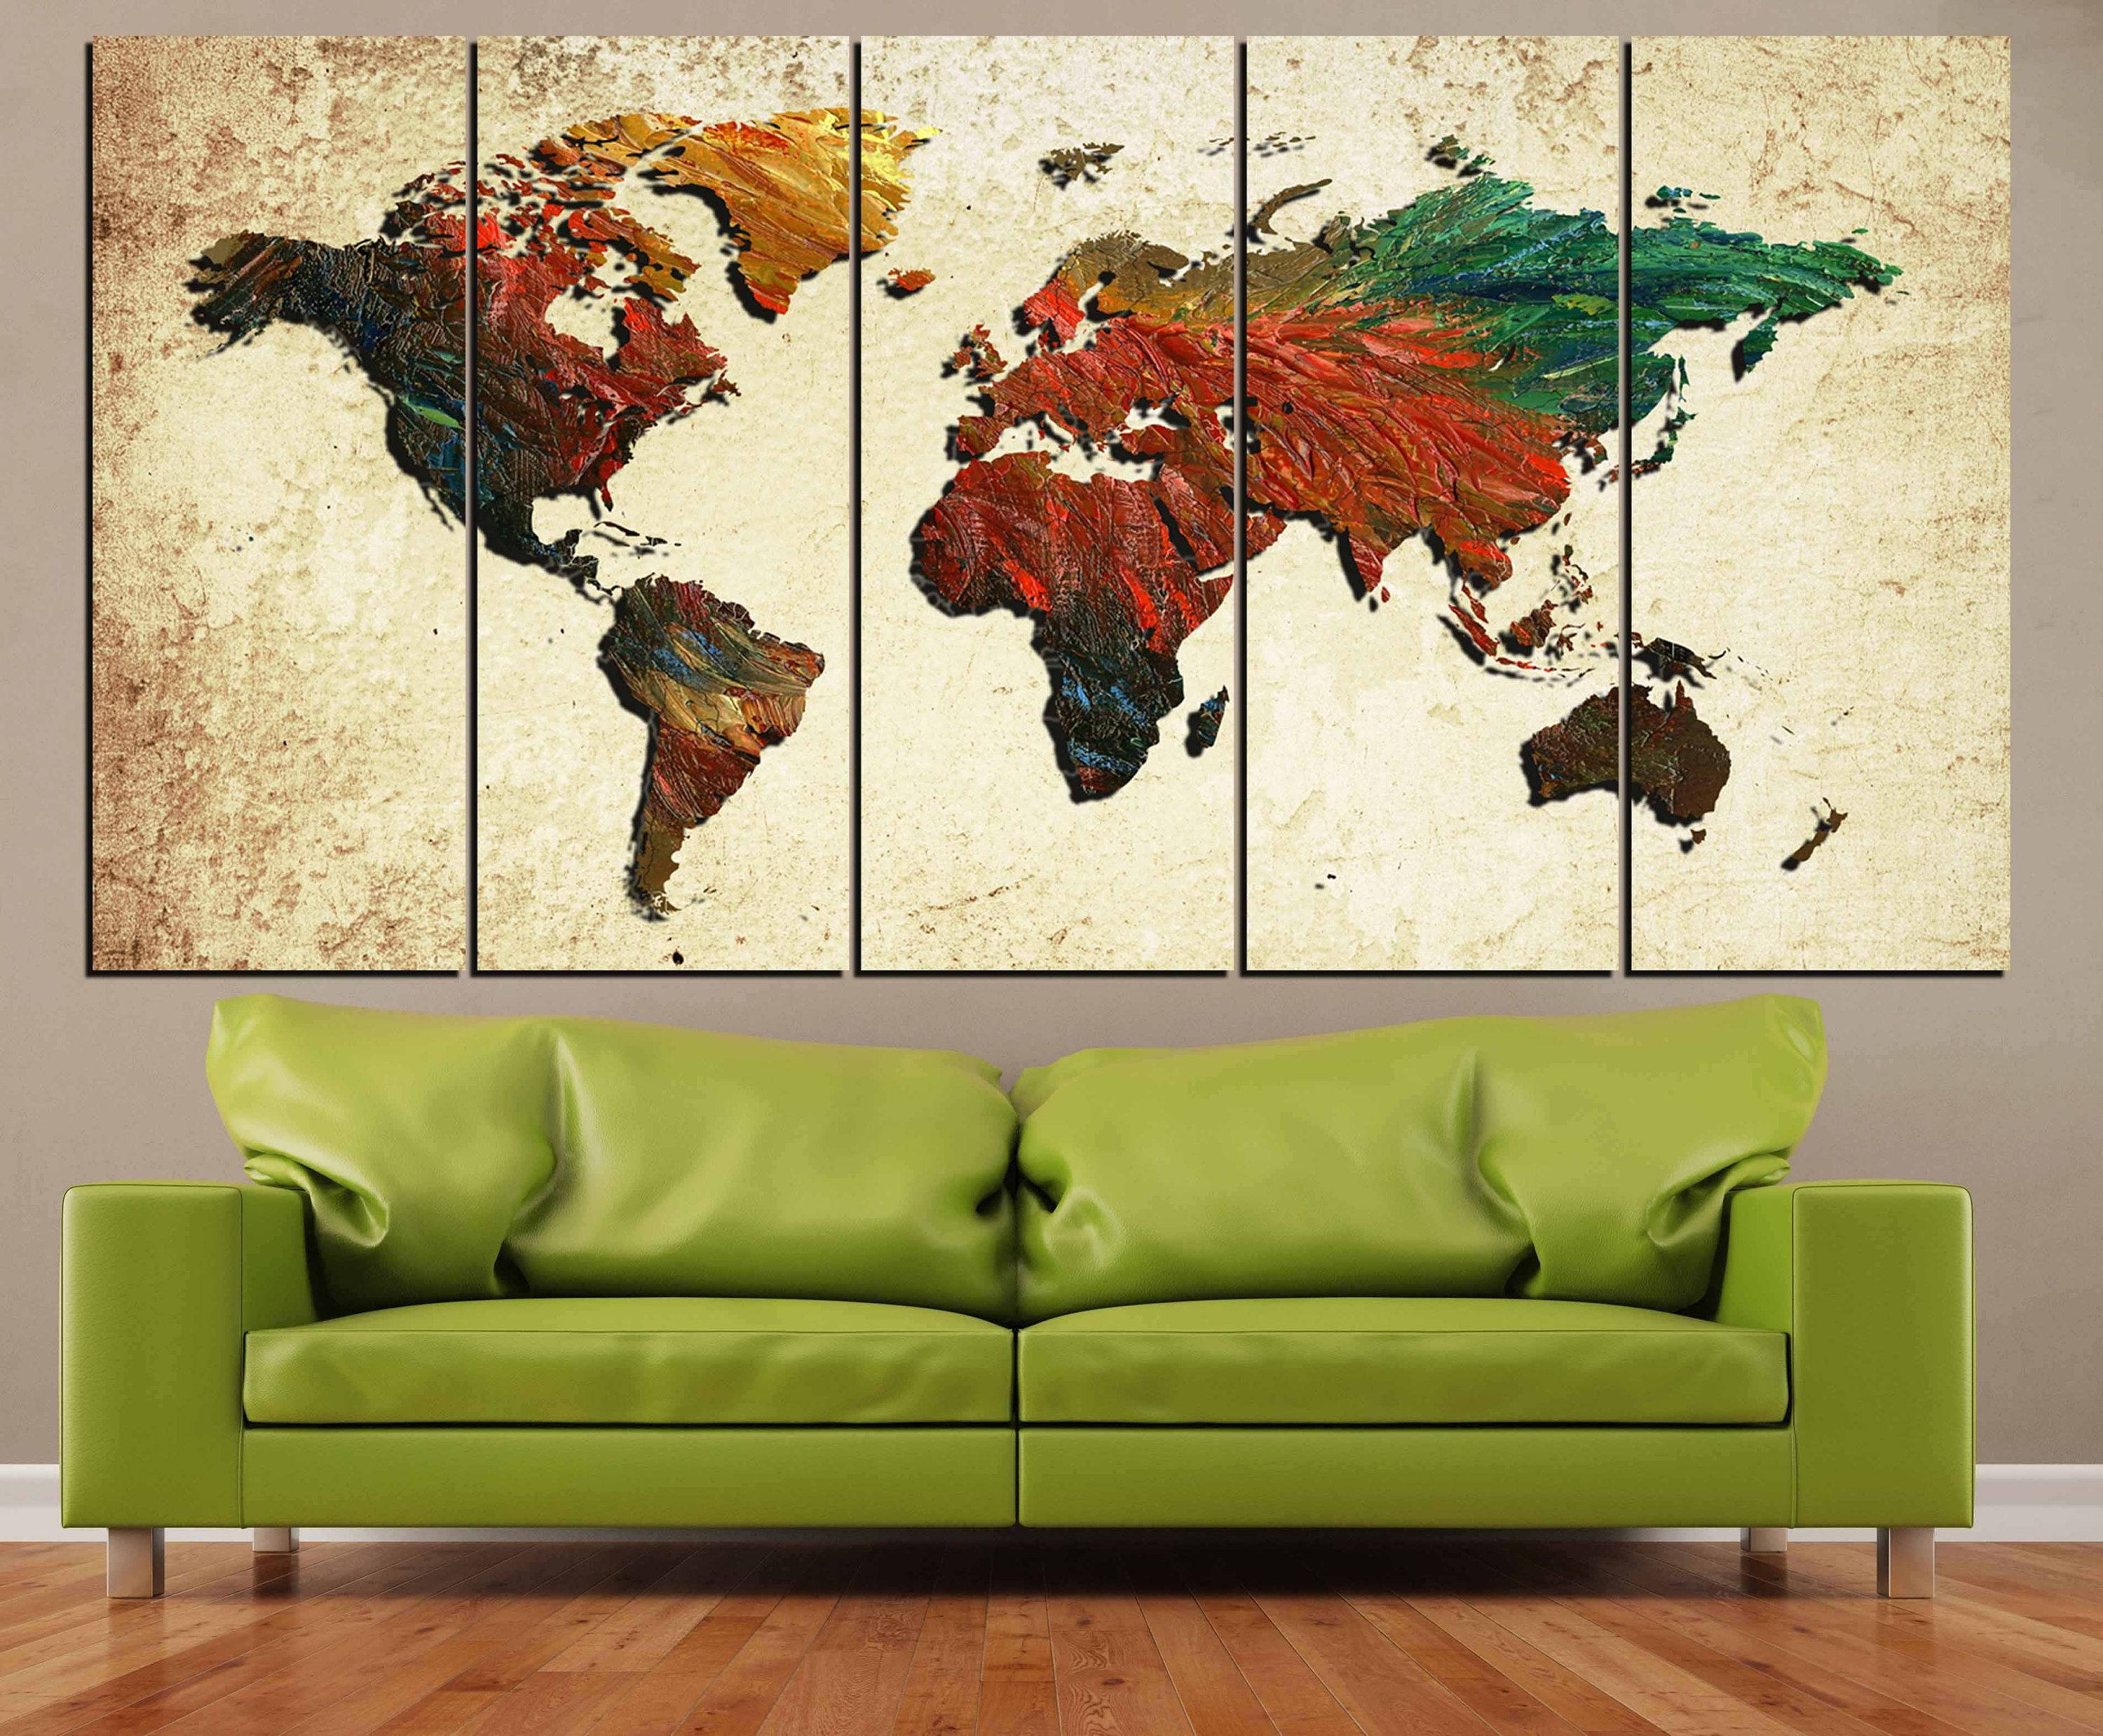 Large World Map,world Map, World Map Painting, Abstract Map Wall Intended For Most Up To Date World Map Wall Artwork (View 18 of 20)